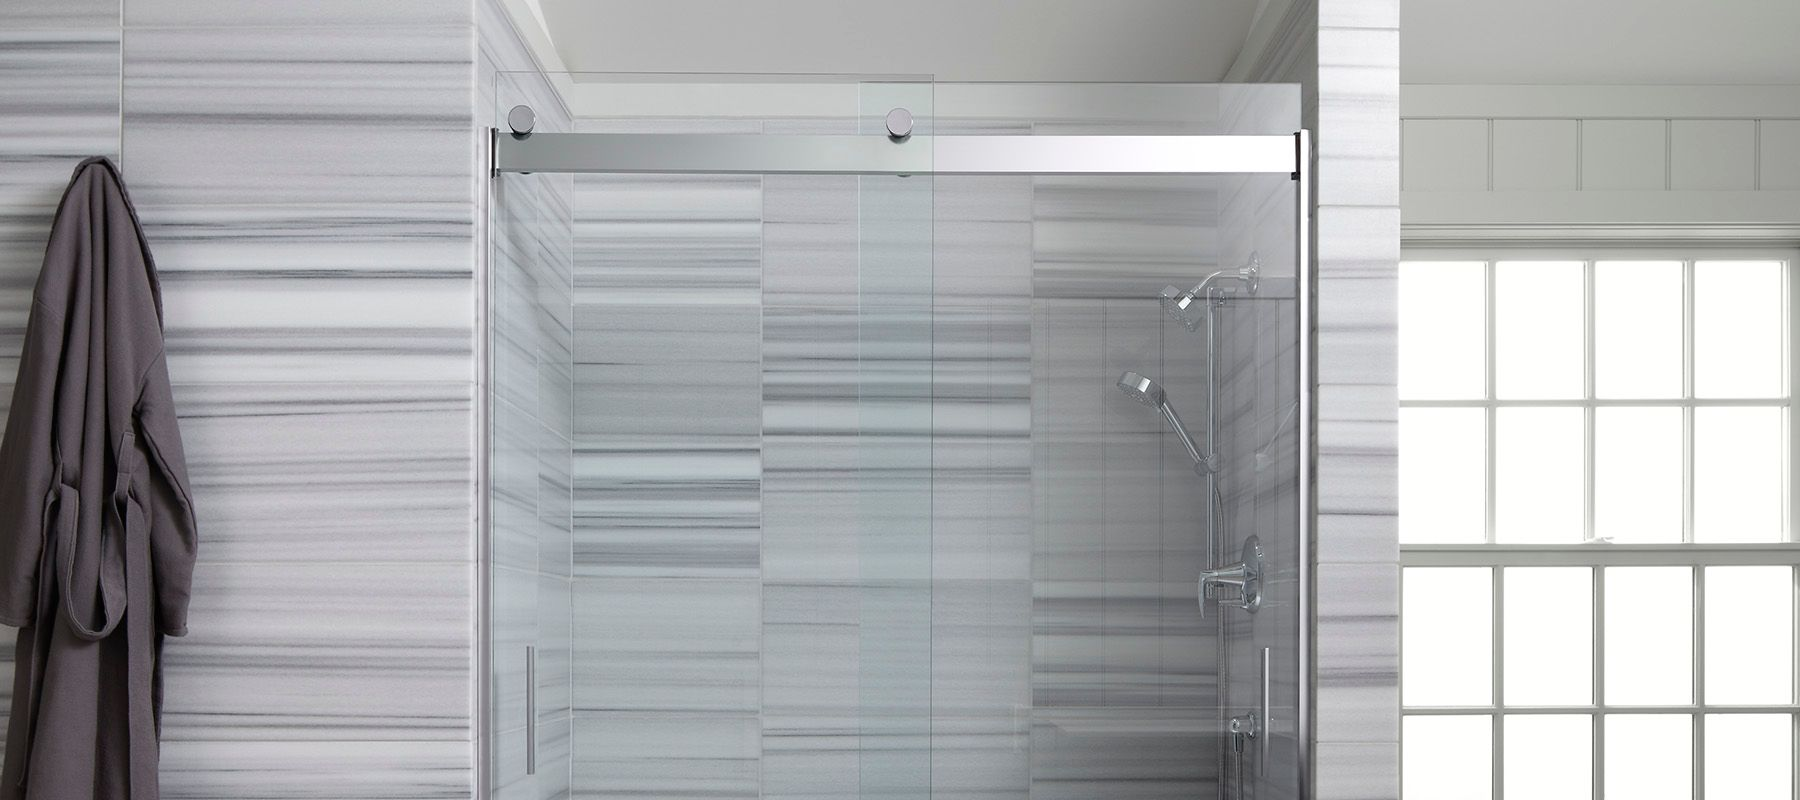 Bathroom Stalls In Europe shower doors | showering |bathroom | kohler